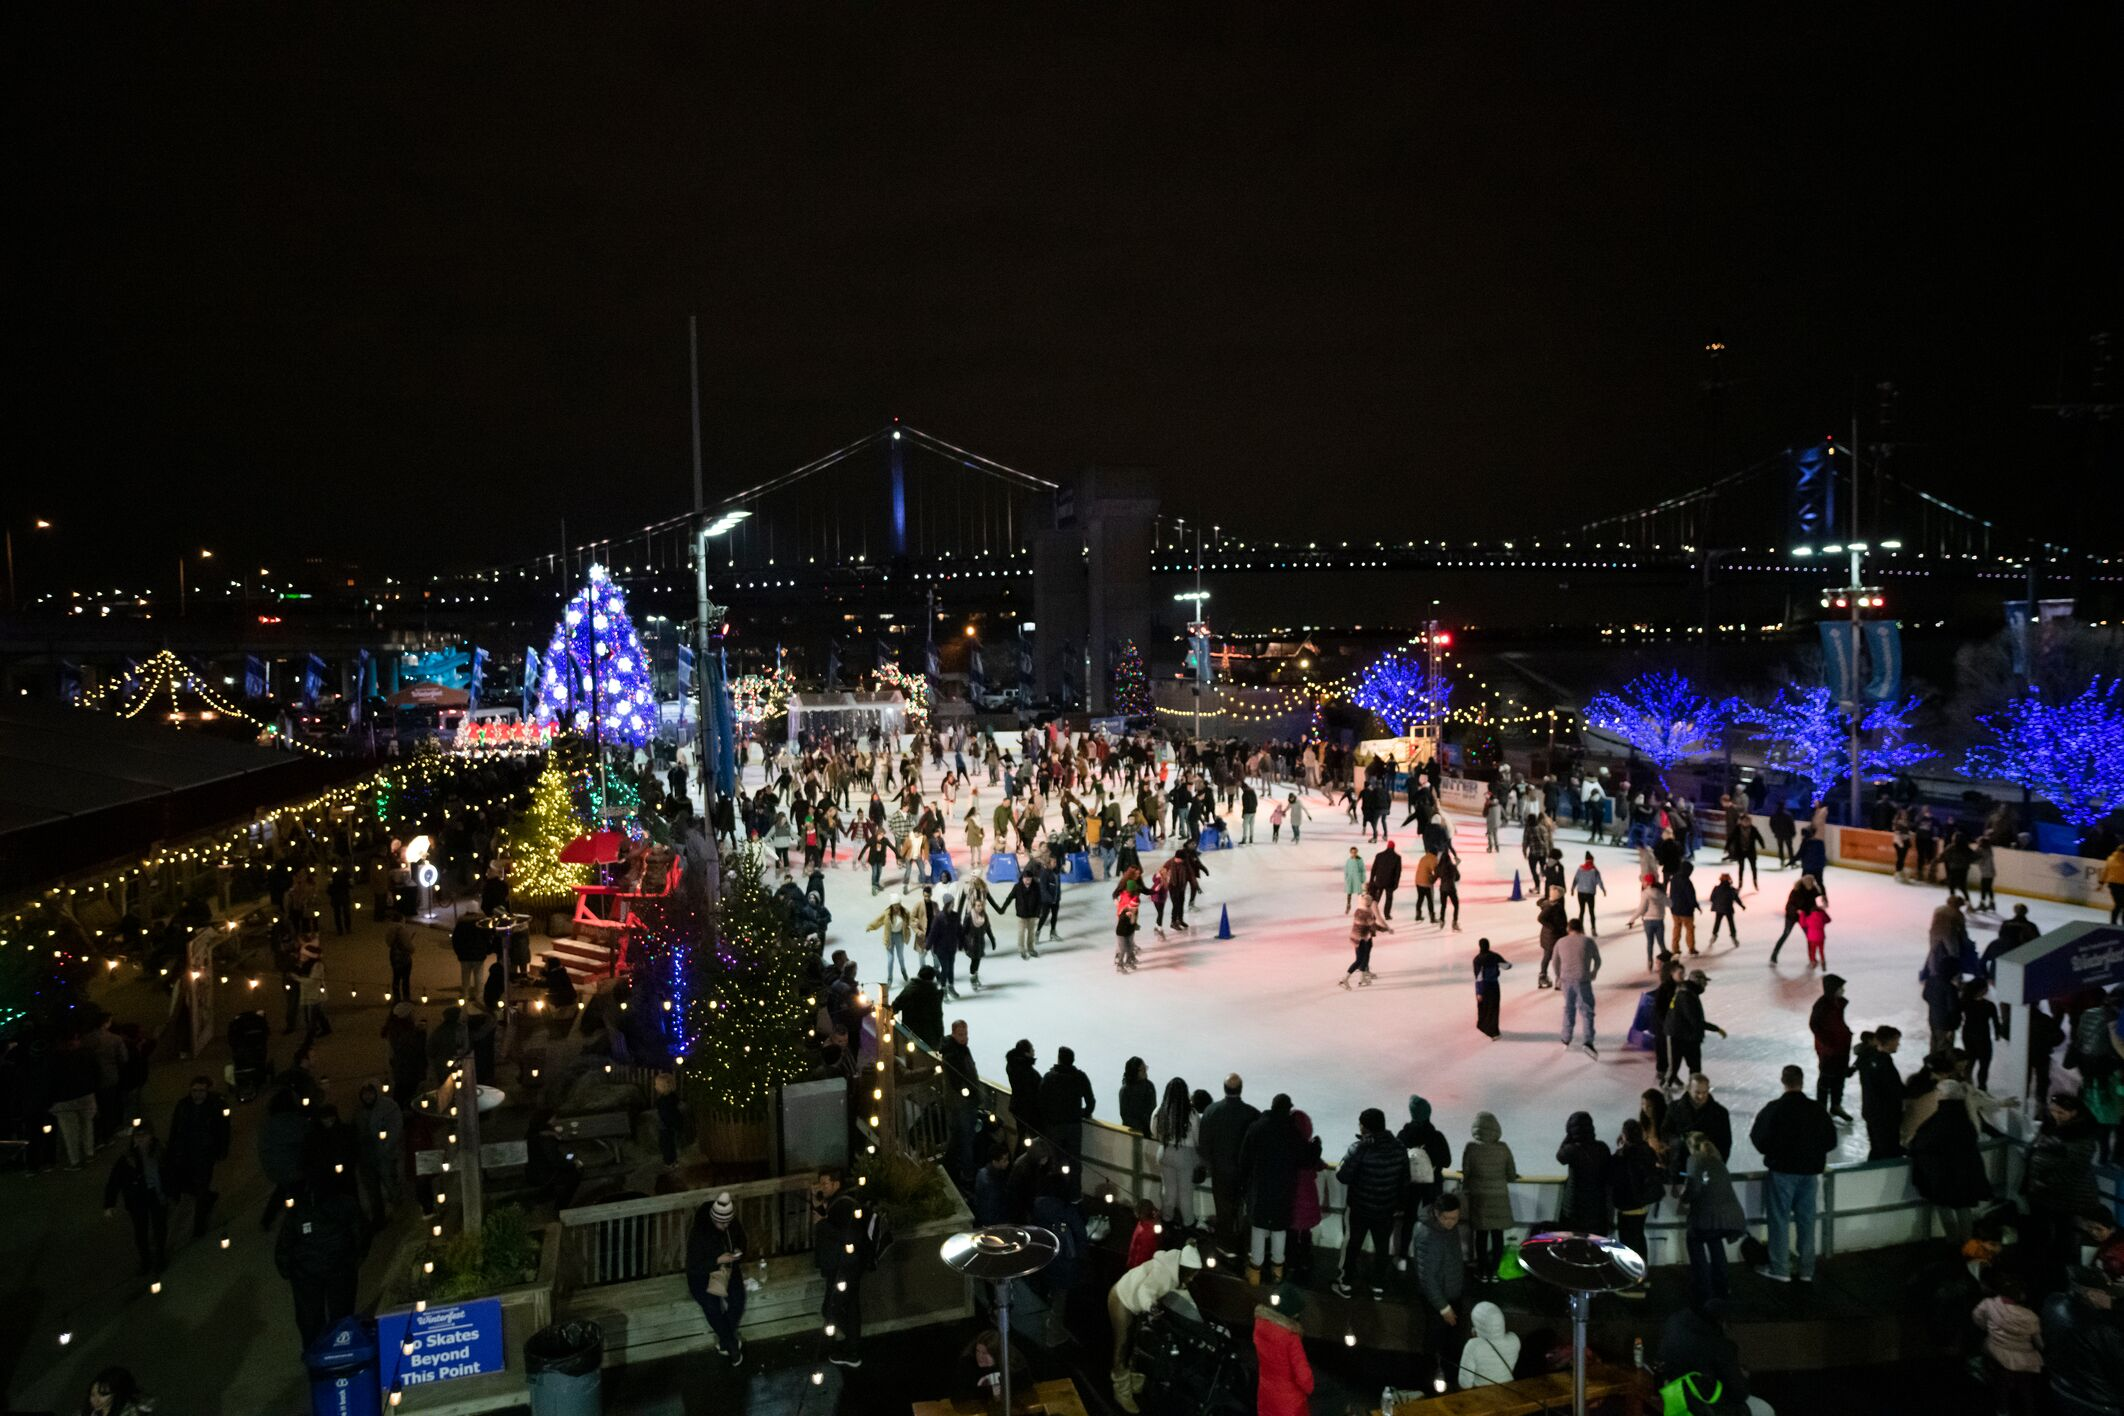 Image of Blue Cross RiverRink Winterfest depicts the waterfront ice skating rink with views of the Ben Franklin Bridge